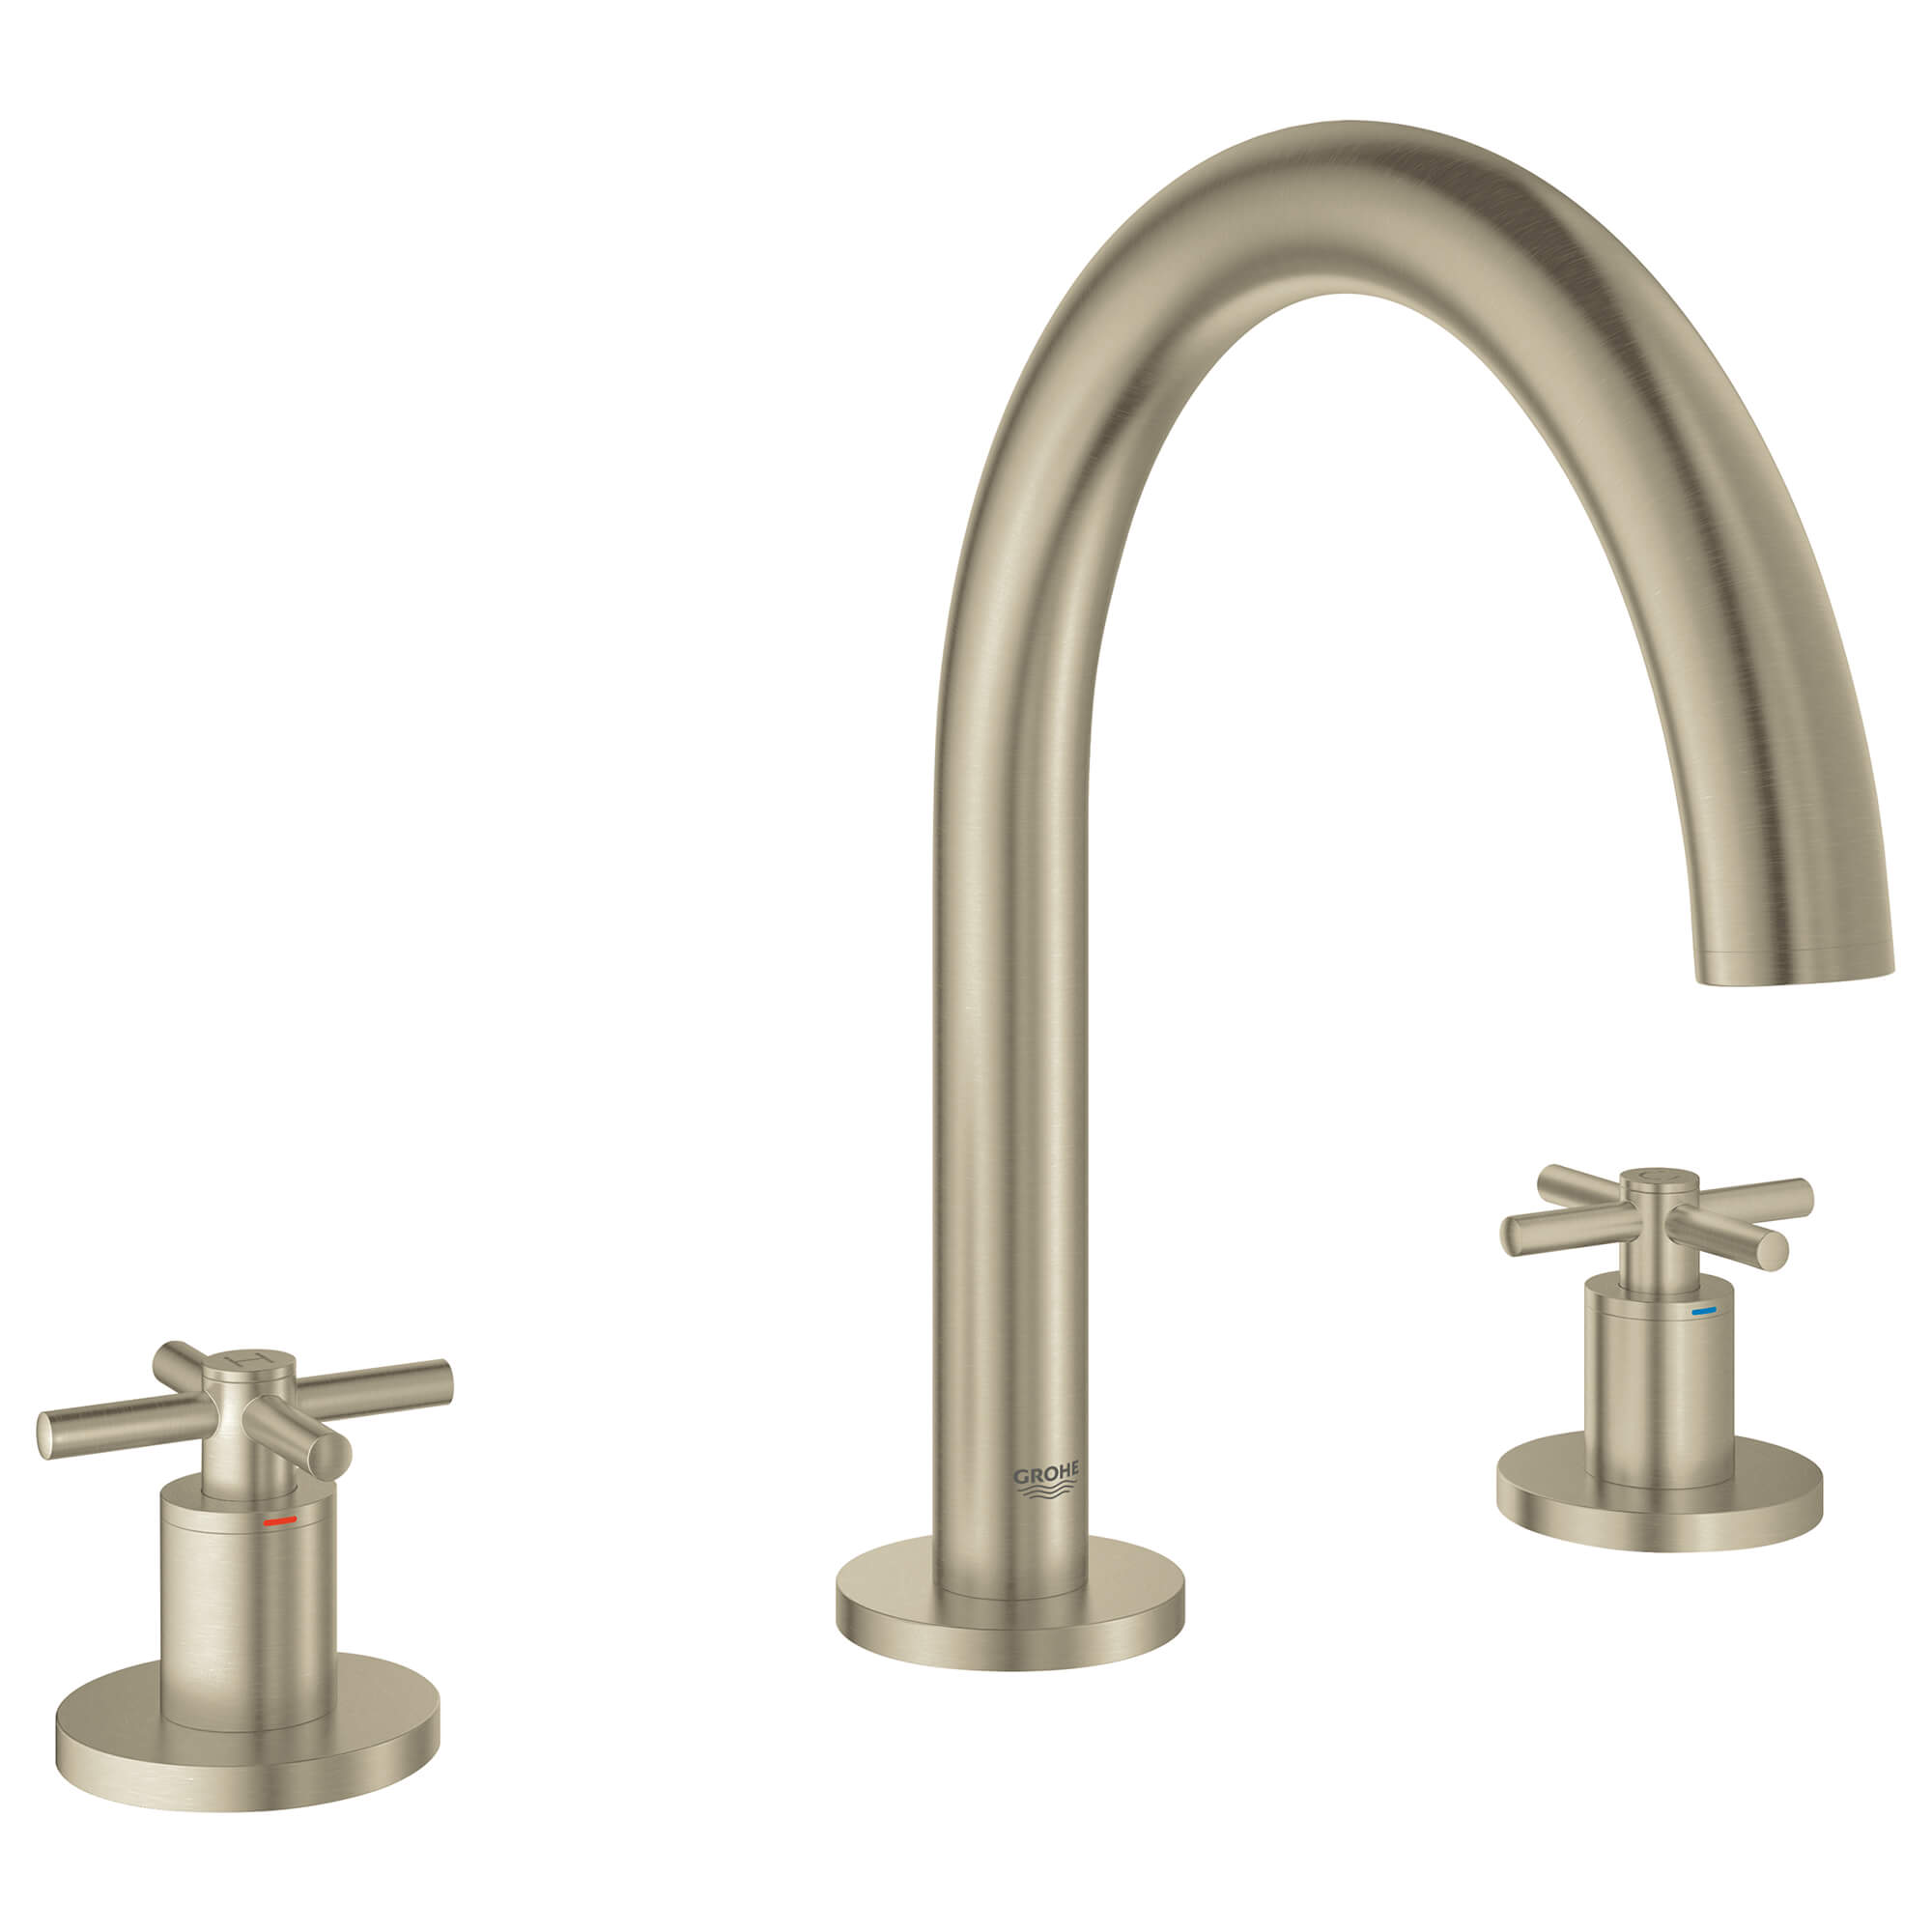 Manettes en croix la paire GROHE BRUSHED NICKEL